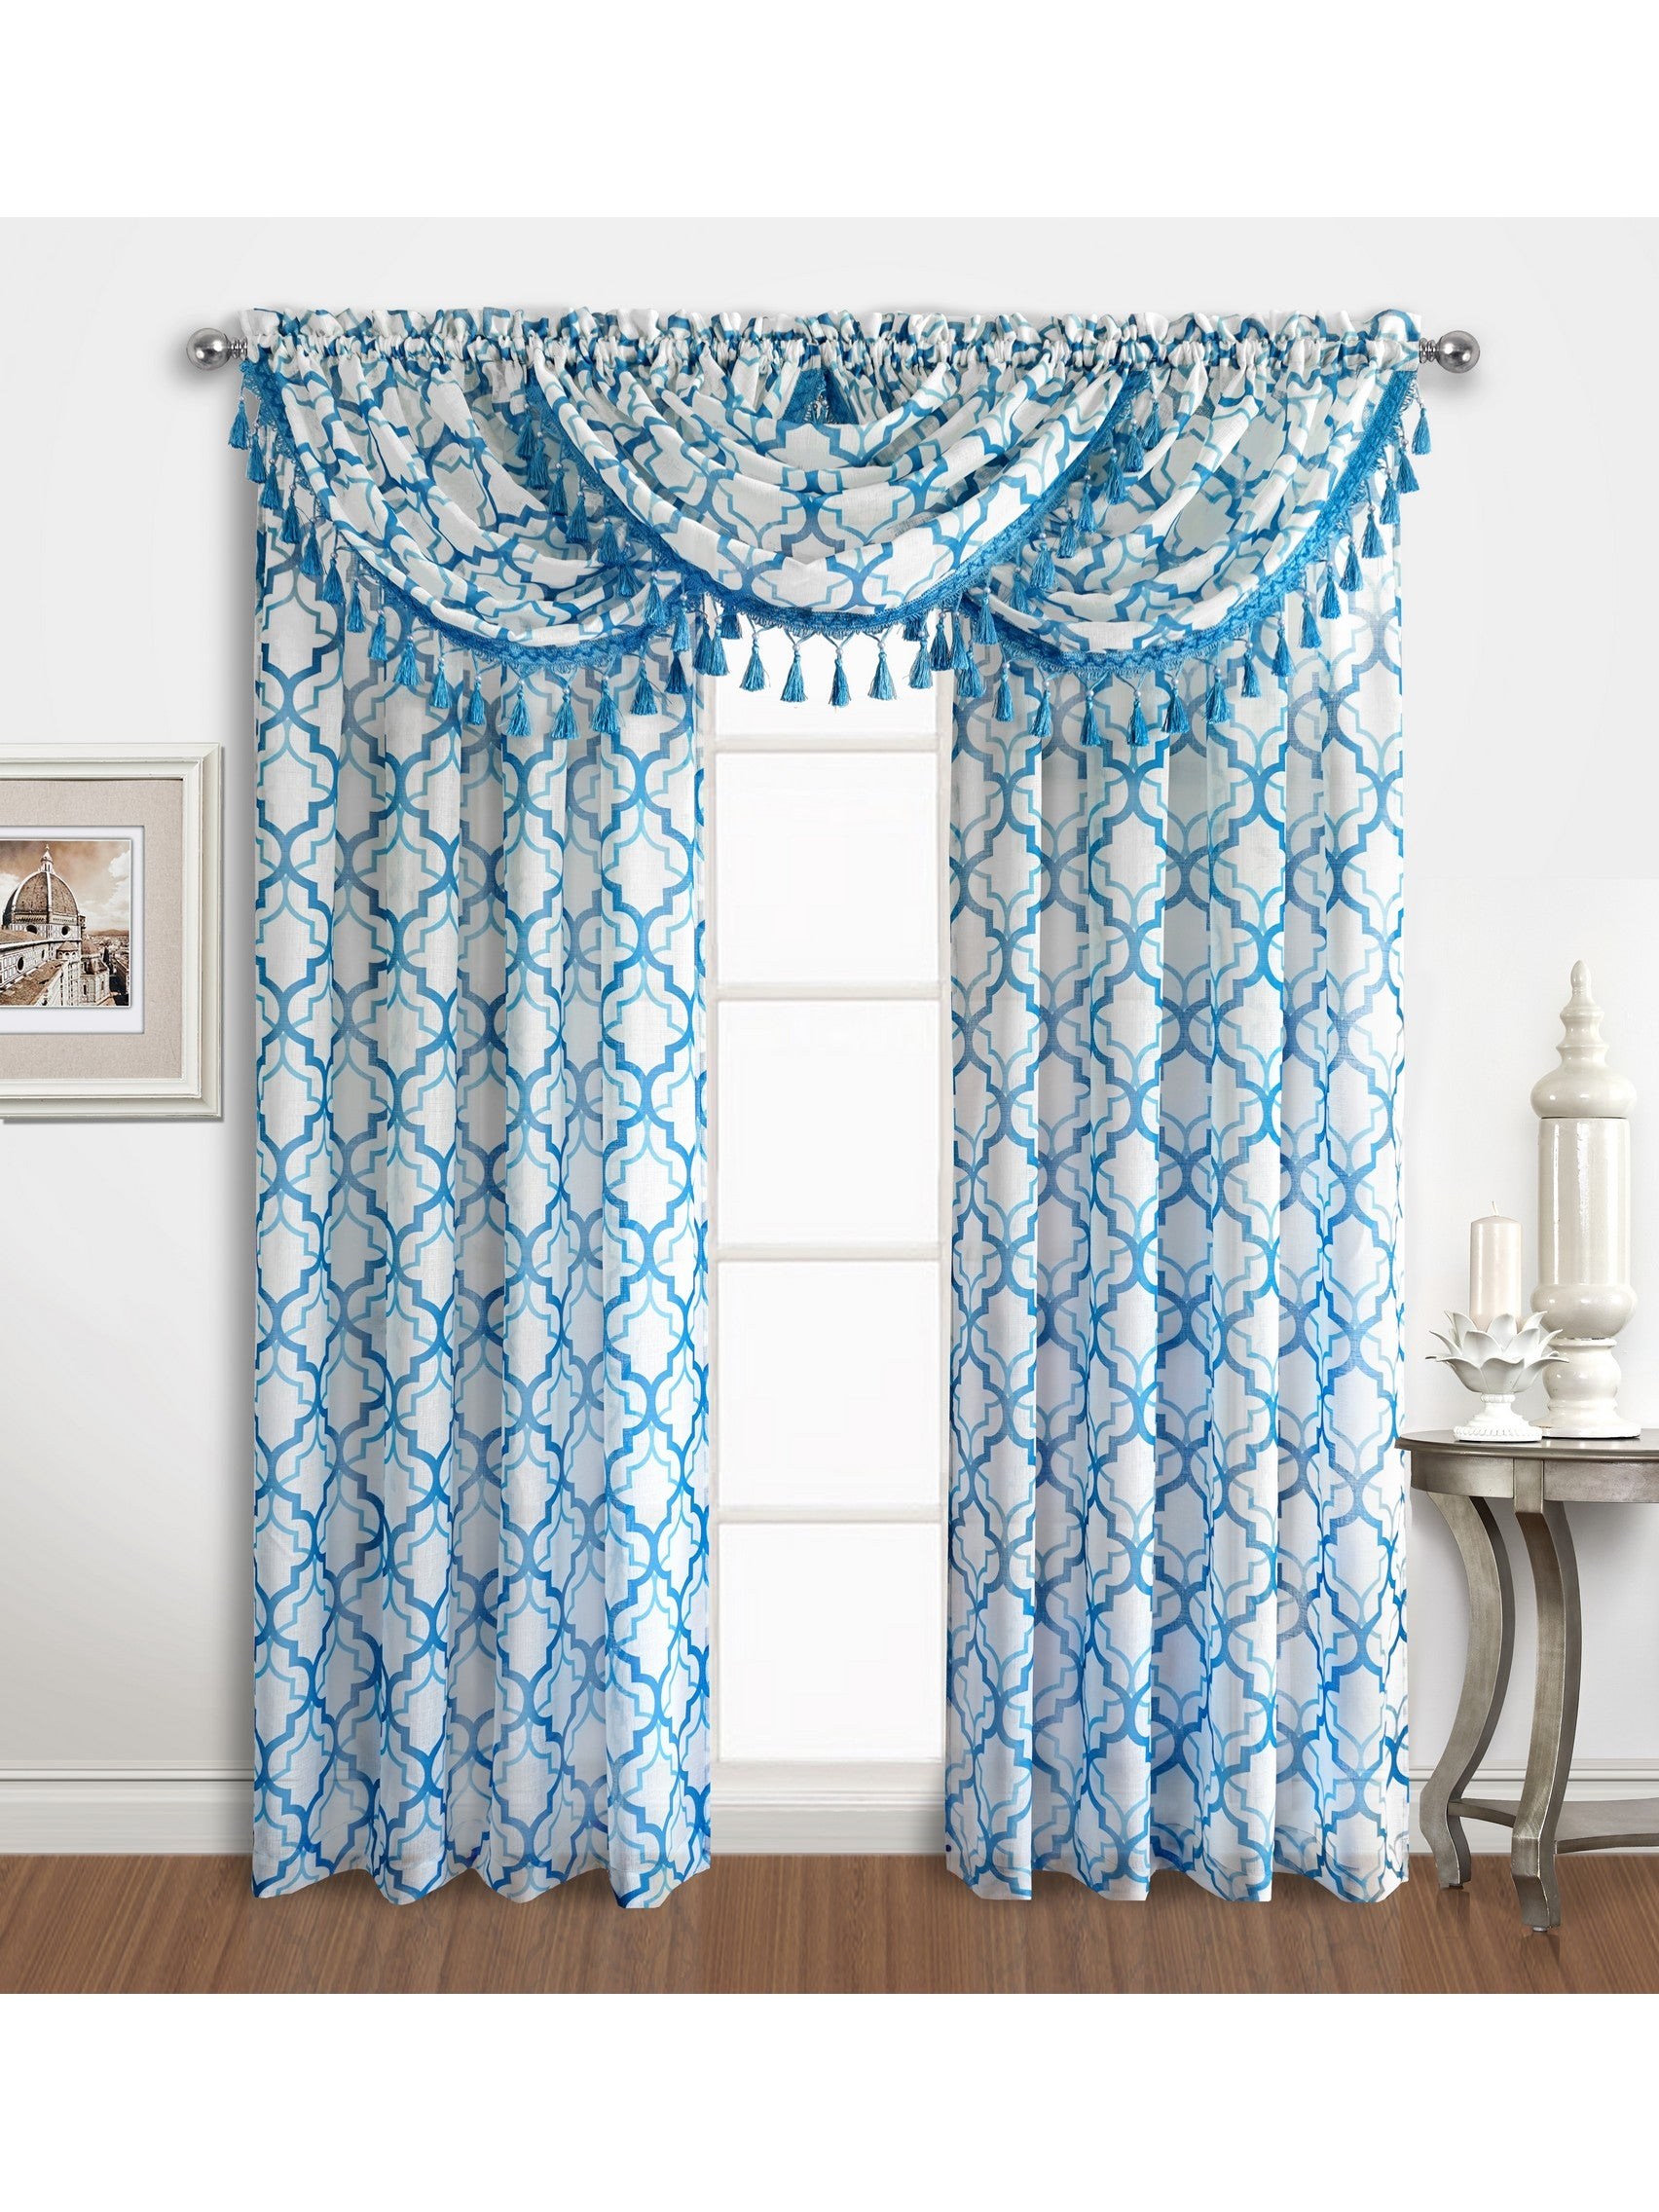 sxs marvelous pics for style uncategorized decorations idea floral curtains valance and blue navy design